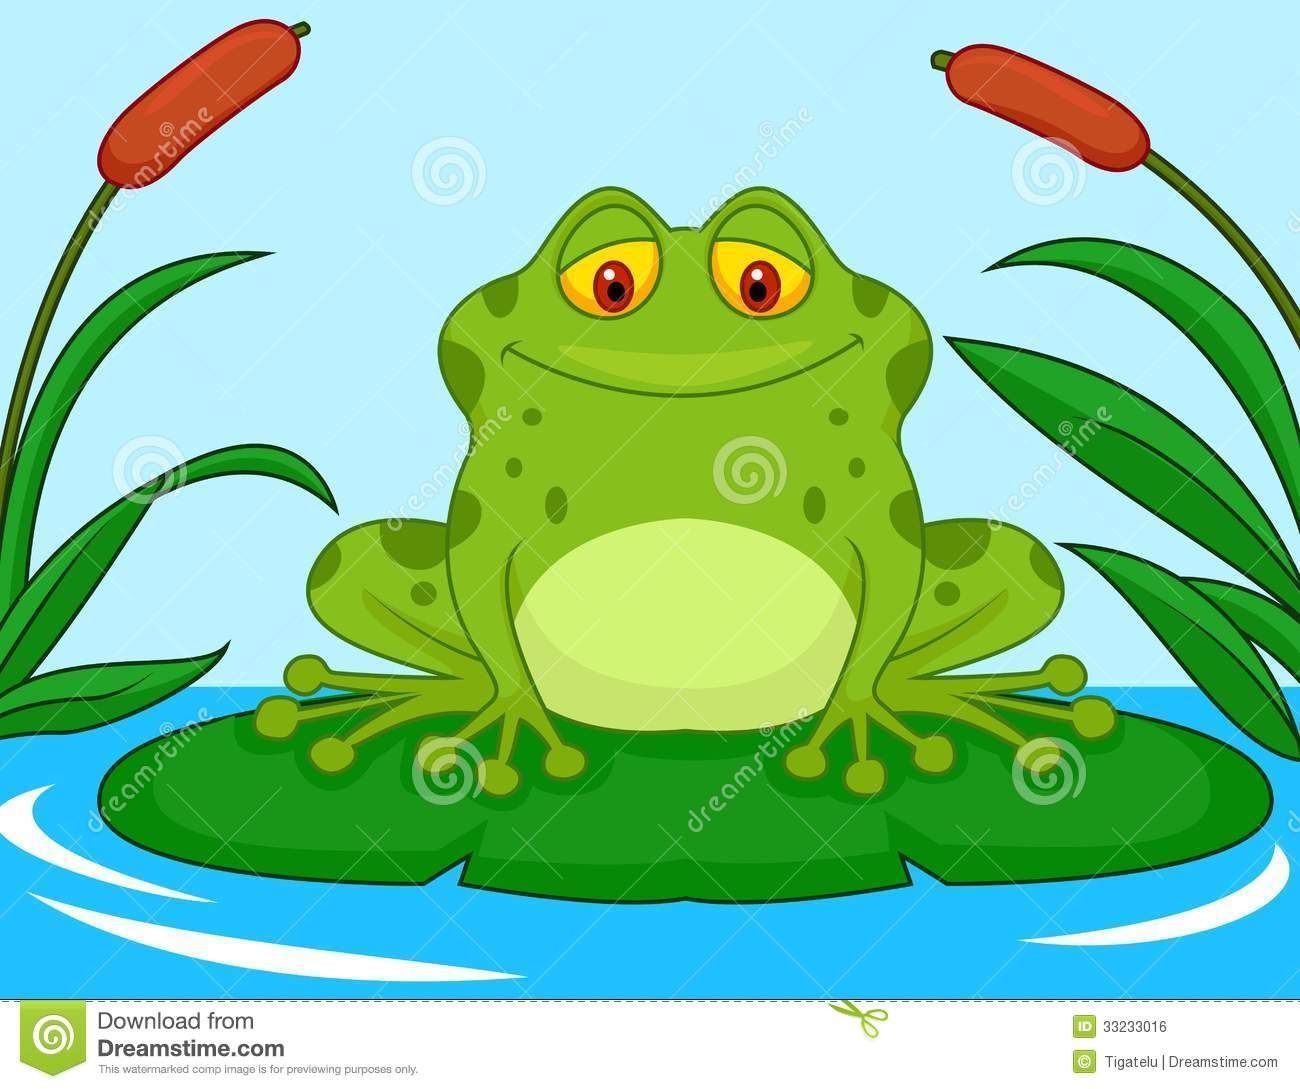 Cute Green Frog Cartoon On A Lily Pad Illustration 33233016.